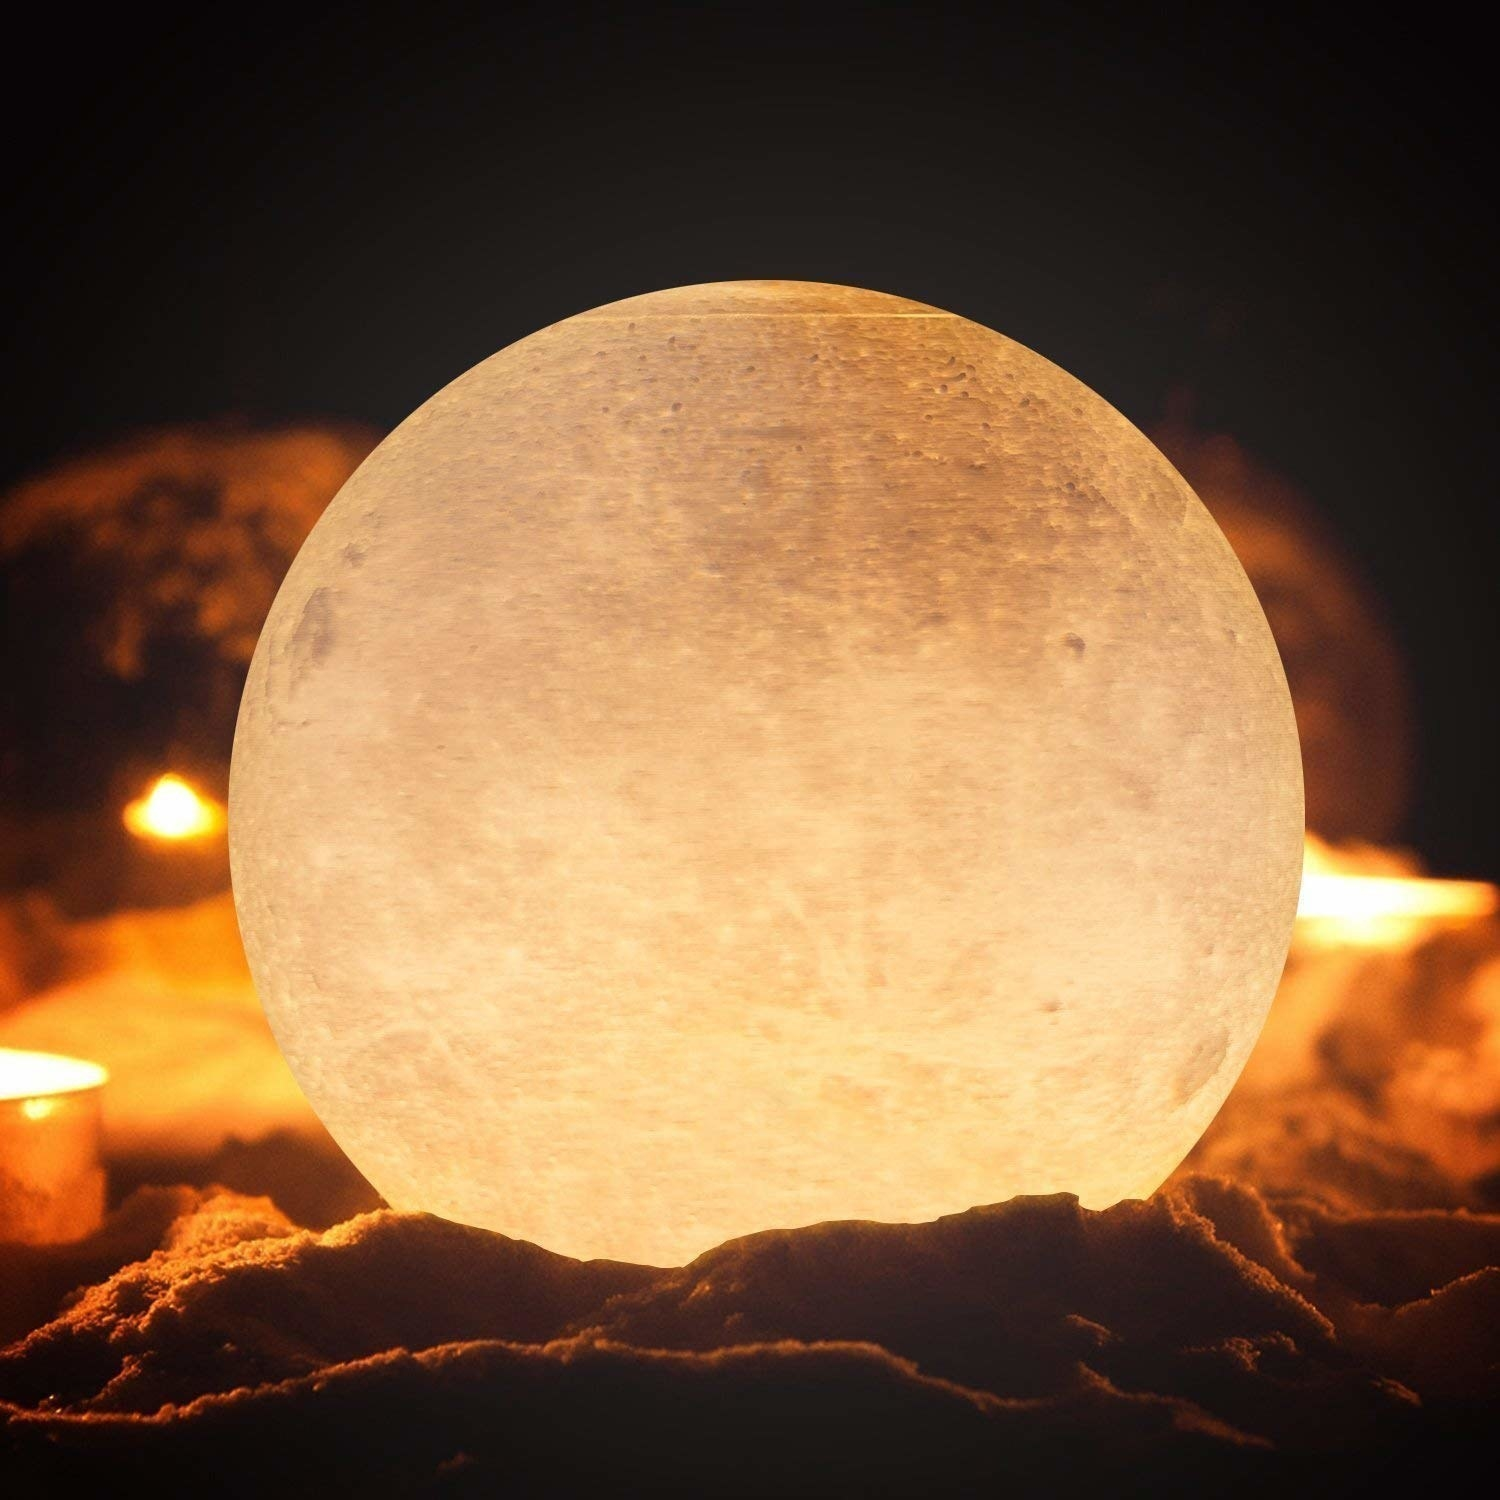 A moon lamp next to a cloth